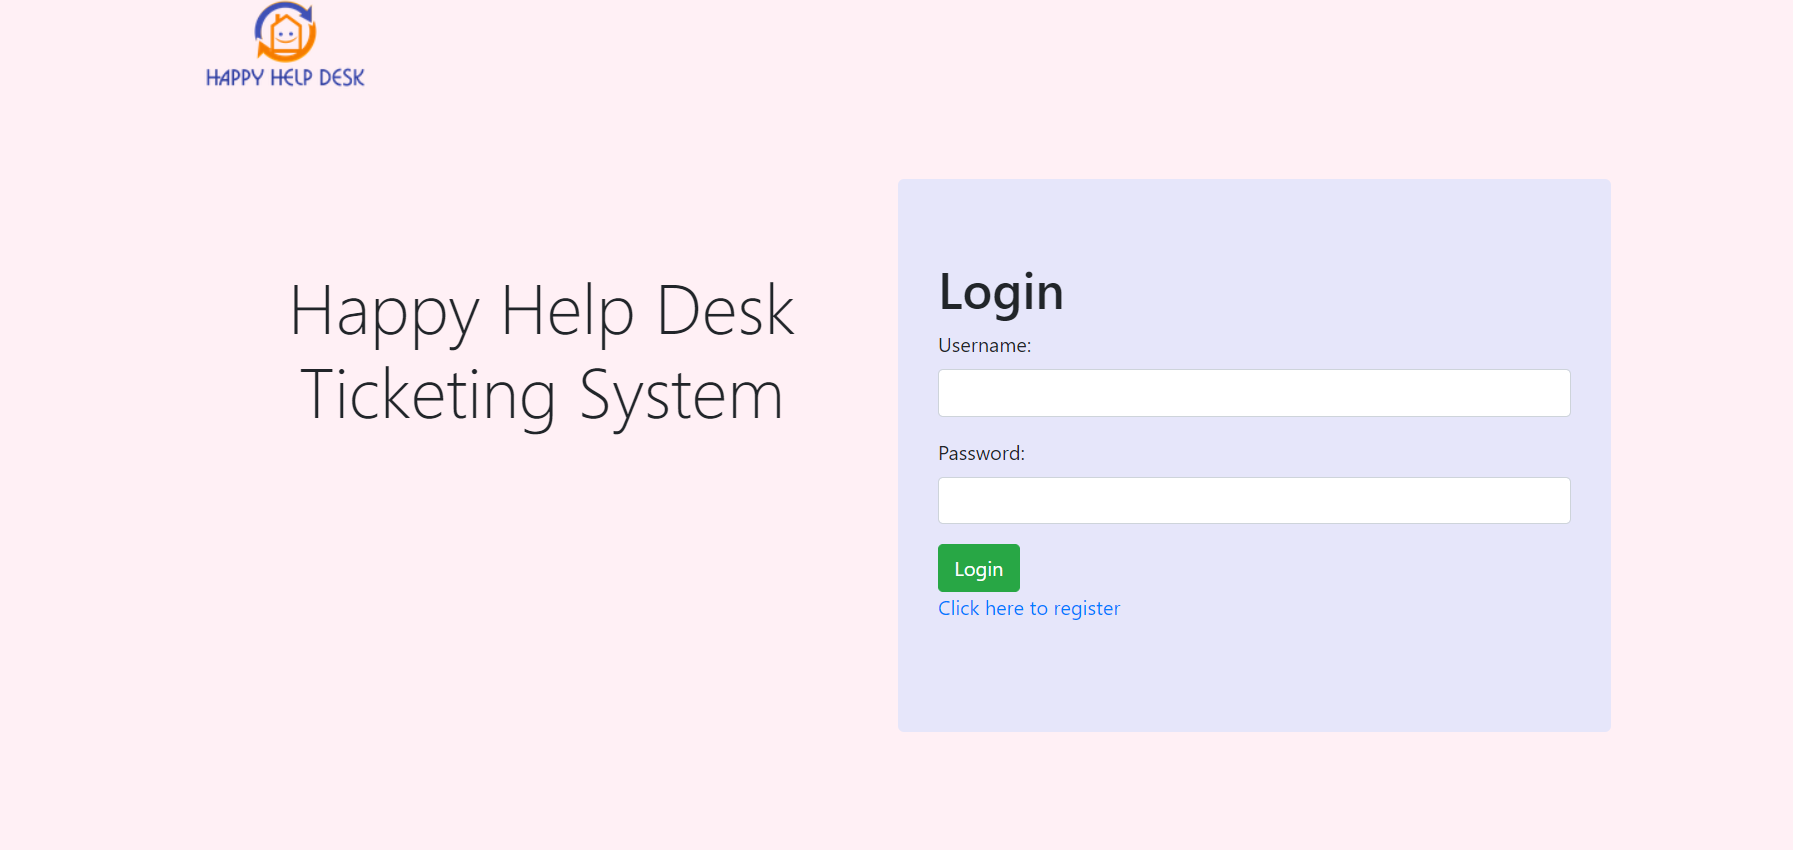 image of Help Desk Ticketing System